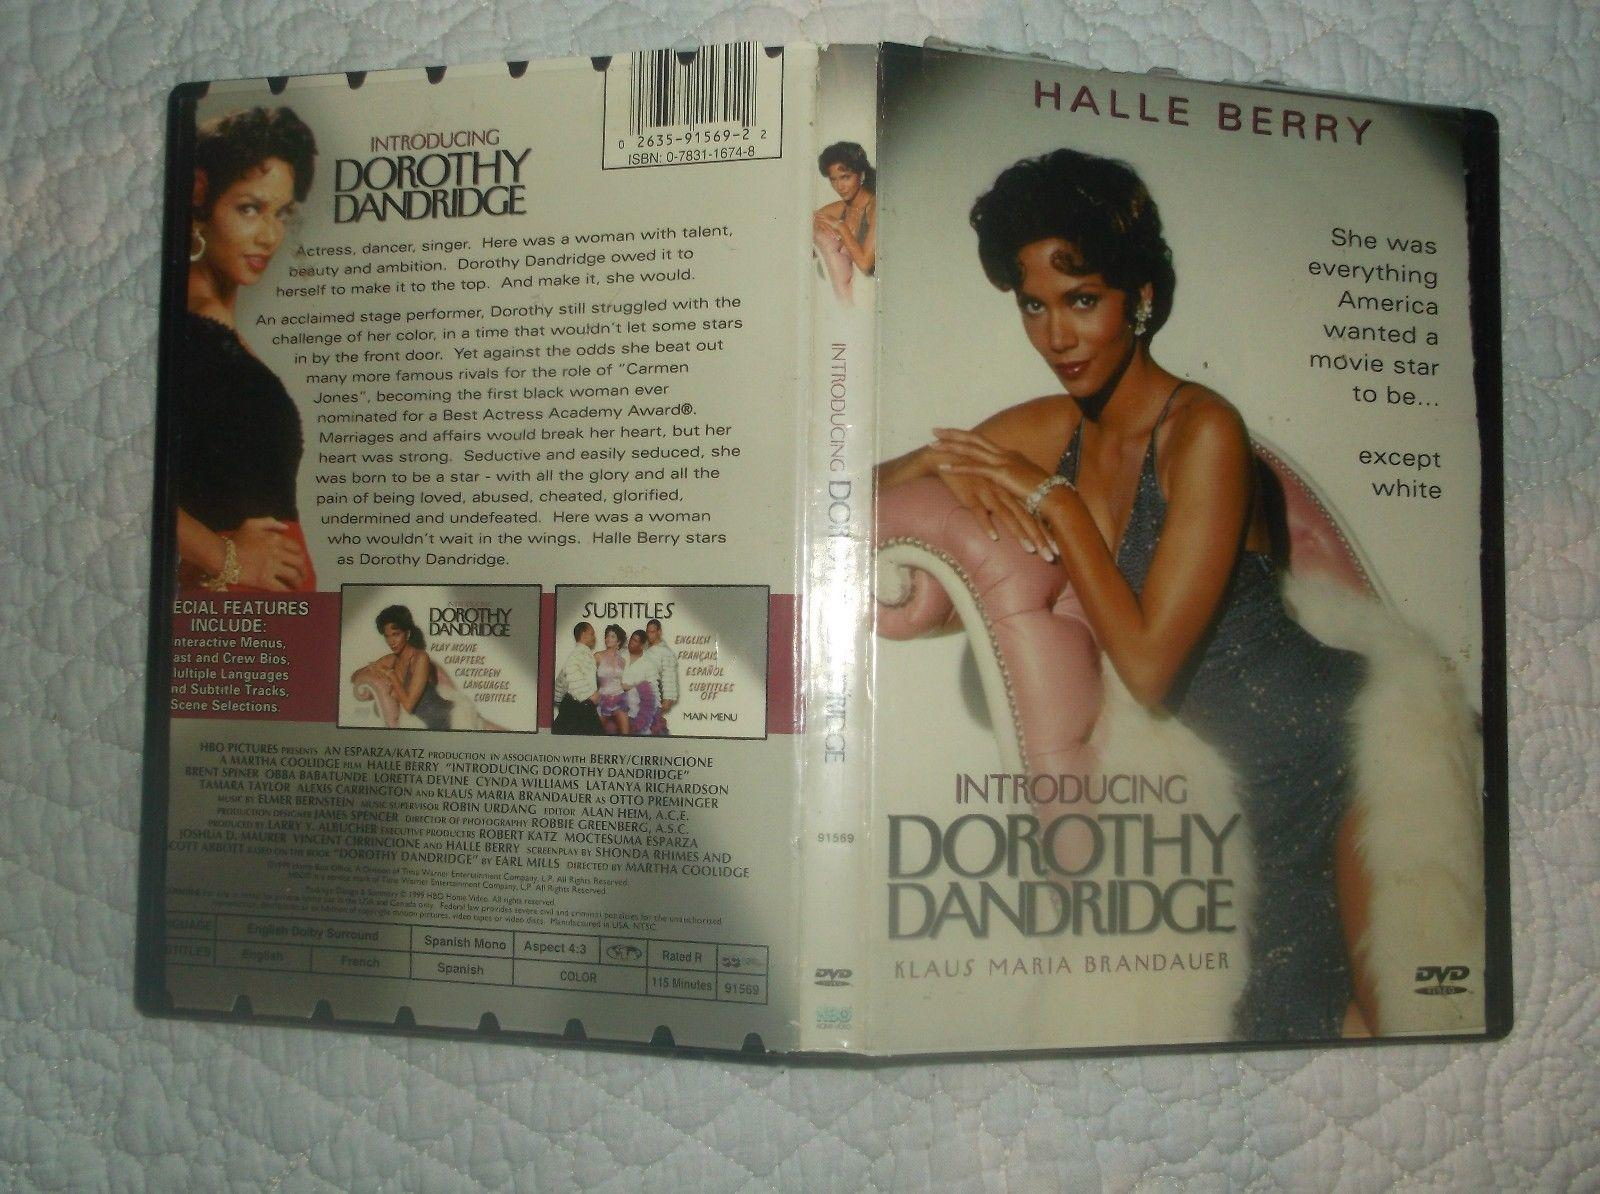 Introducing Dorothy Dandridge, DVD, Halle Berry, Brent Spiner, Loretta Devine